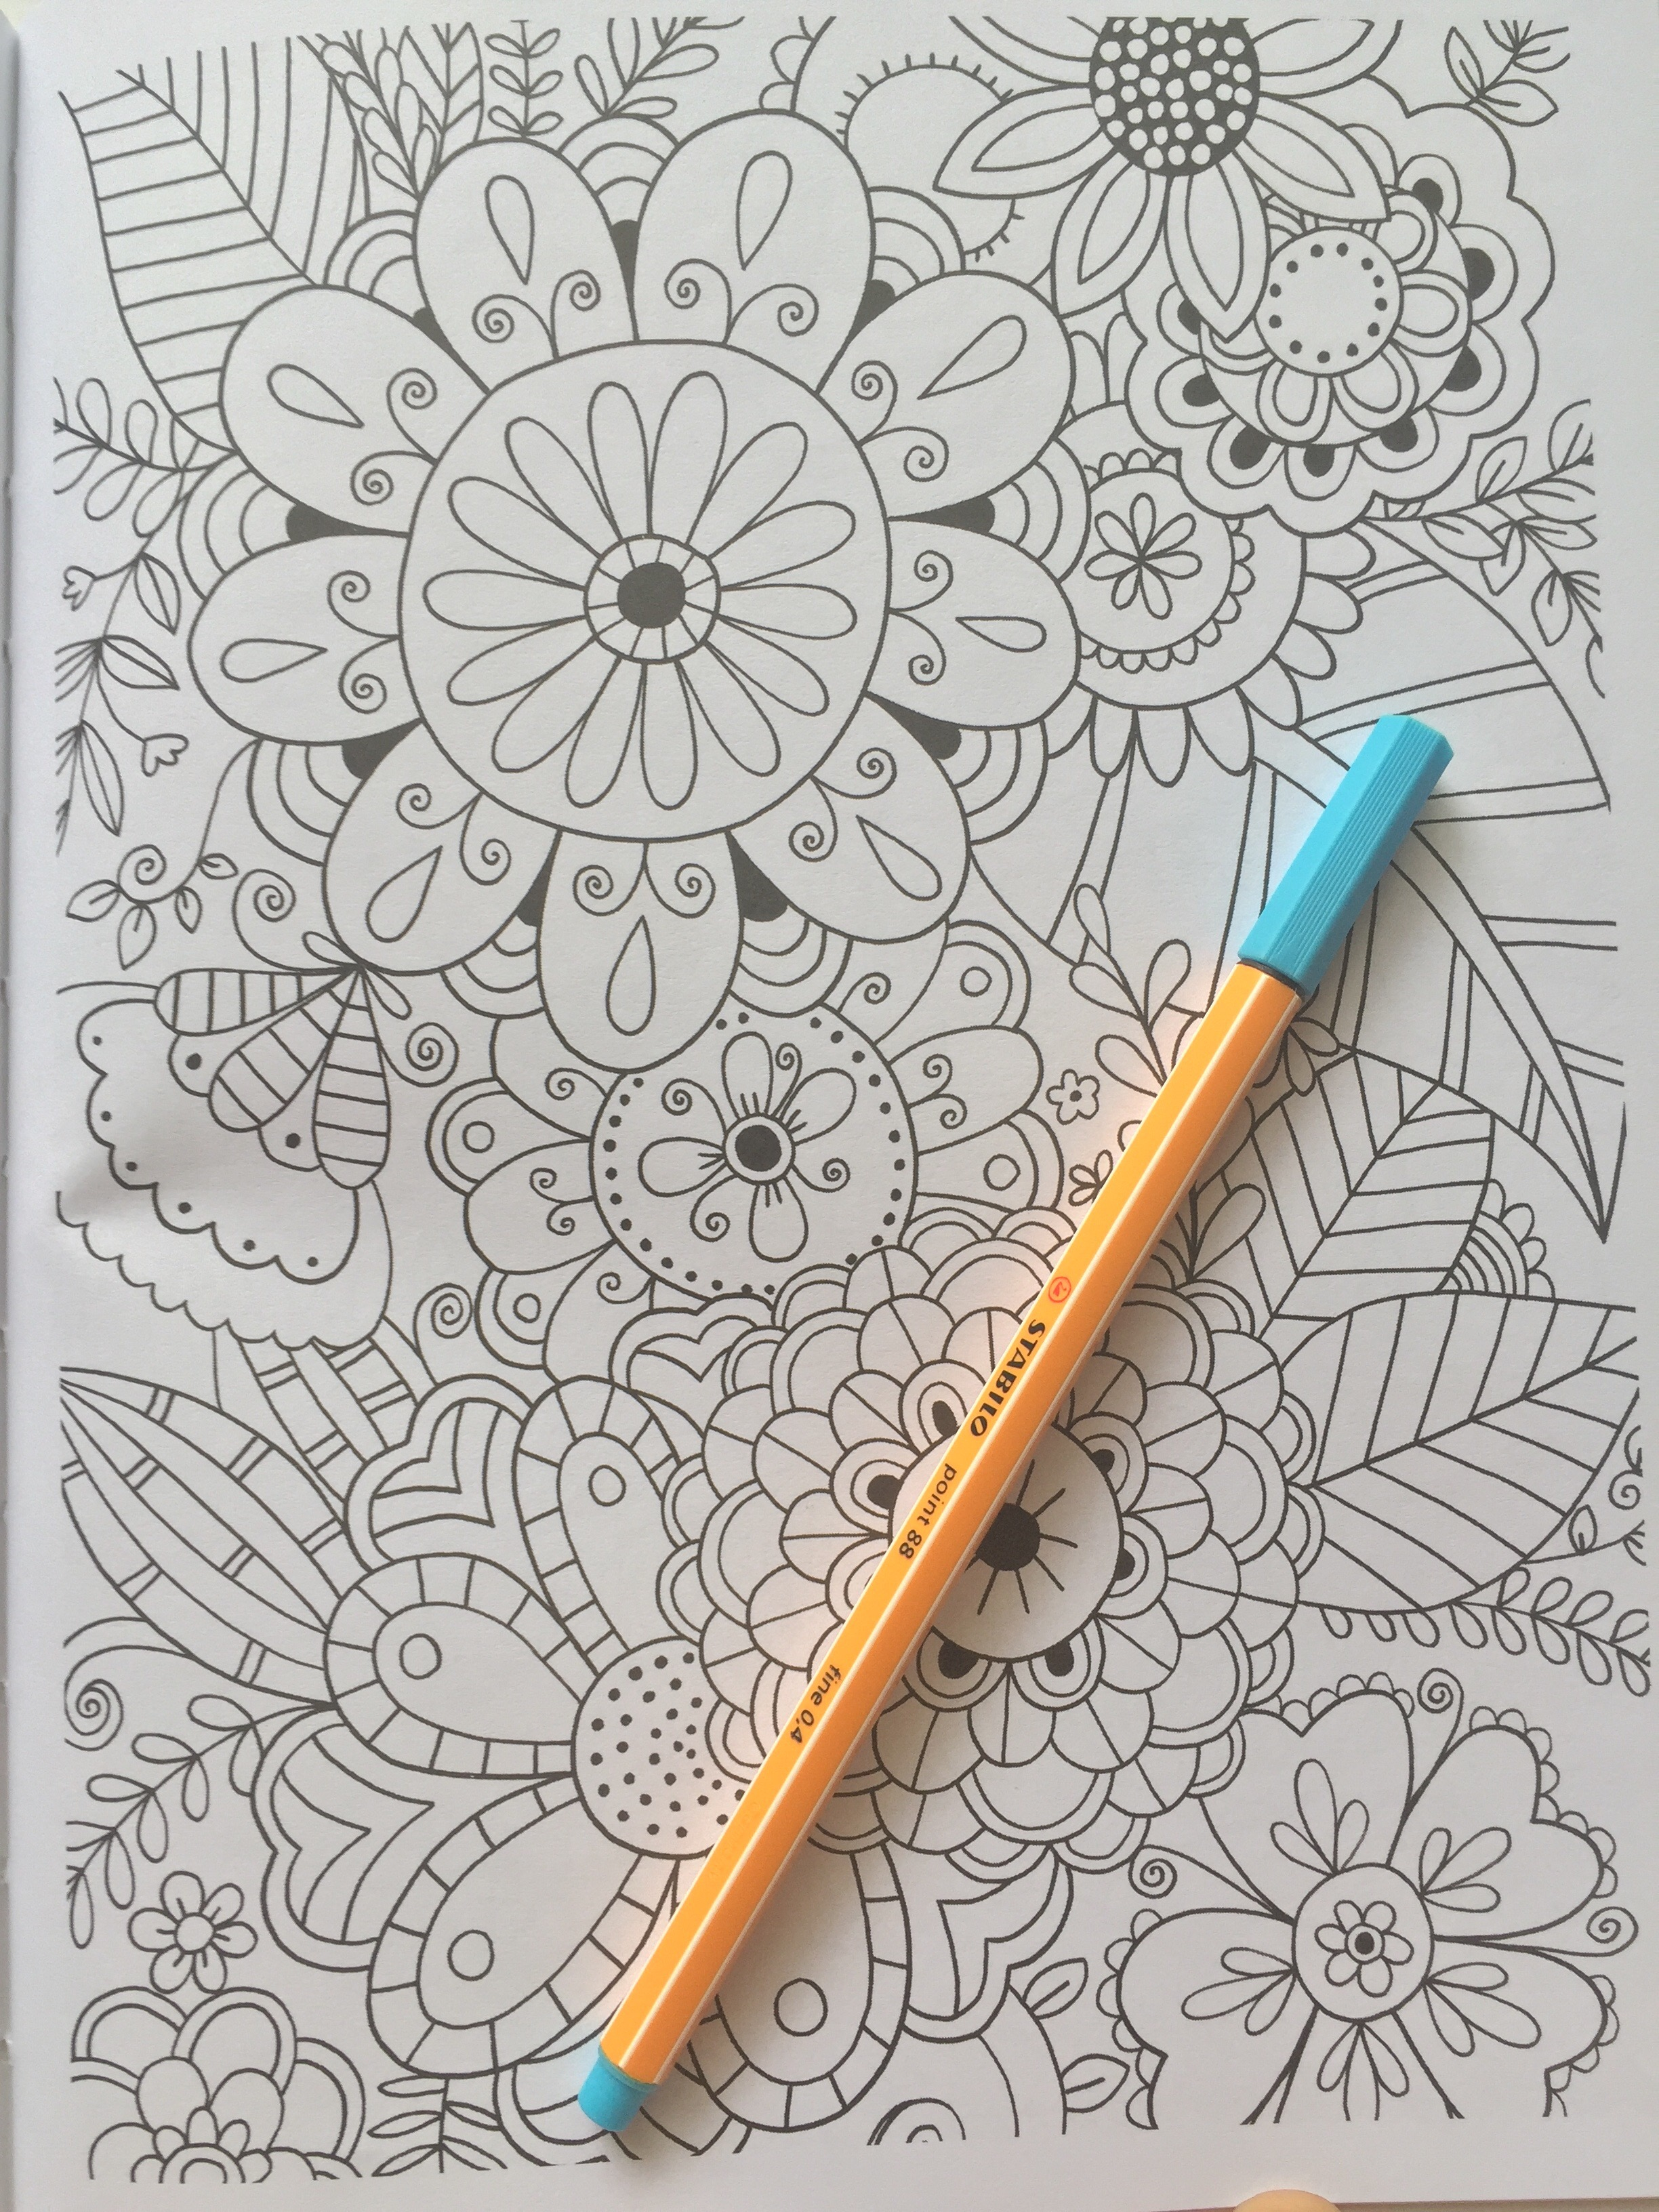 adult colouring mindfulness art therapy relaxed focused book review colouring